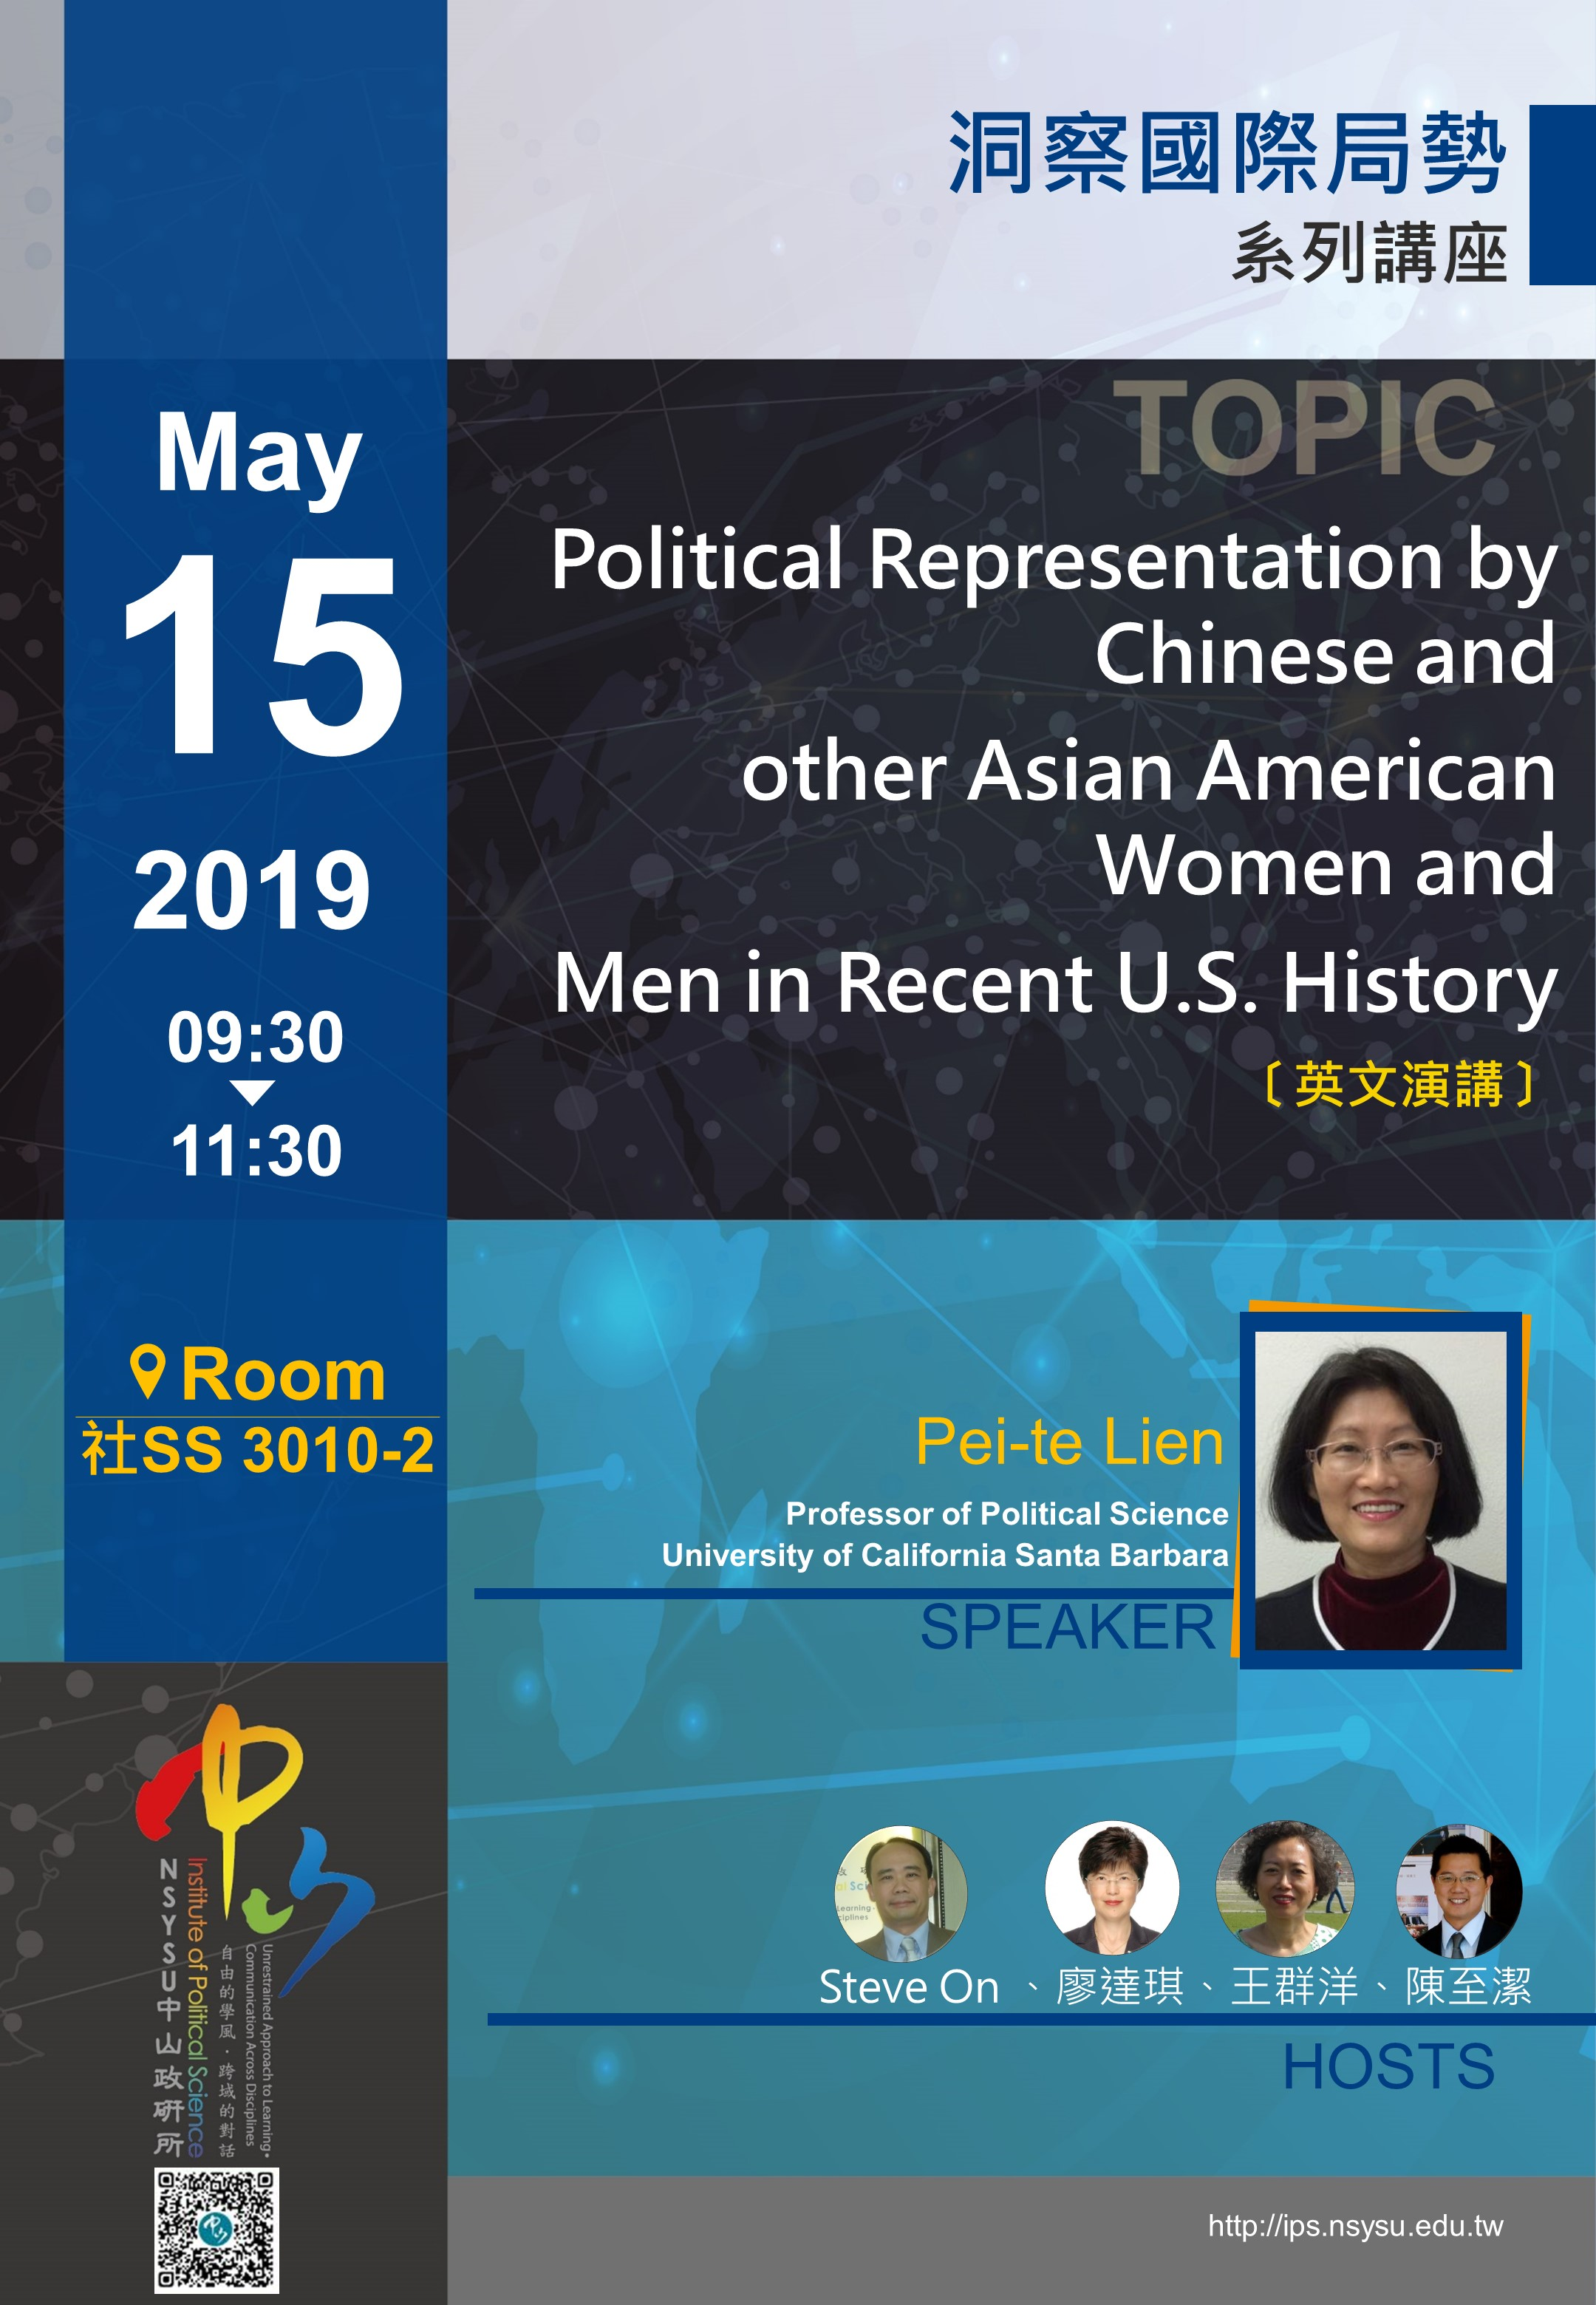 連培德:Political Representation by Chinese and other Asian American Women and Men in Recent U.S. History